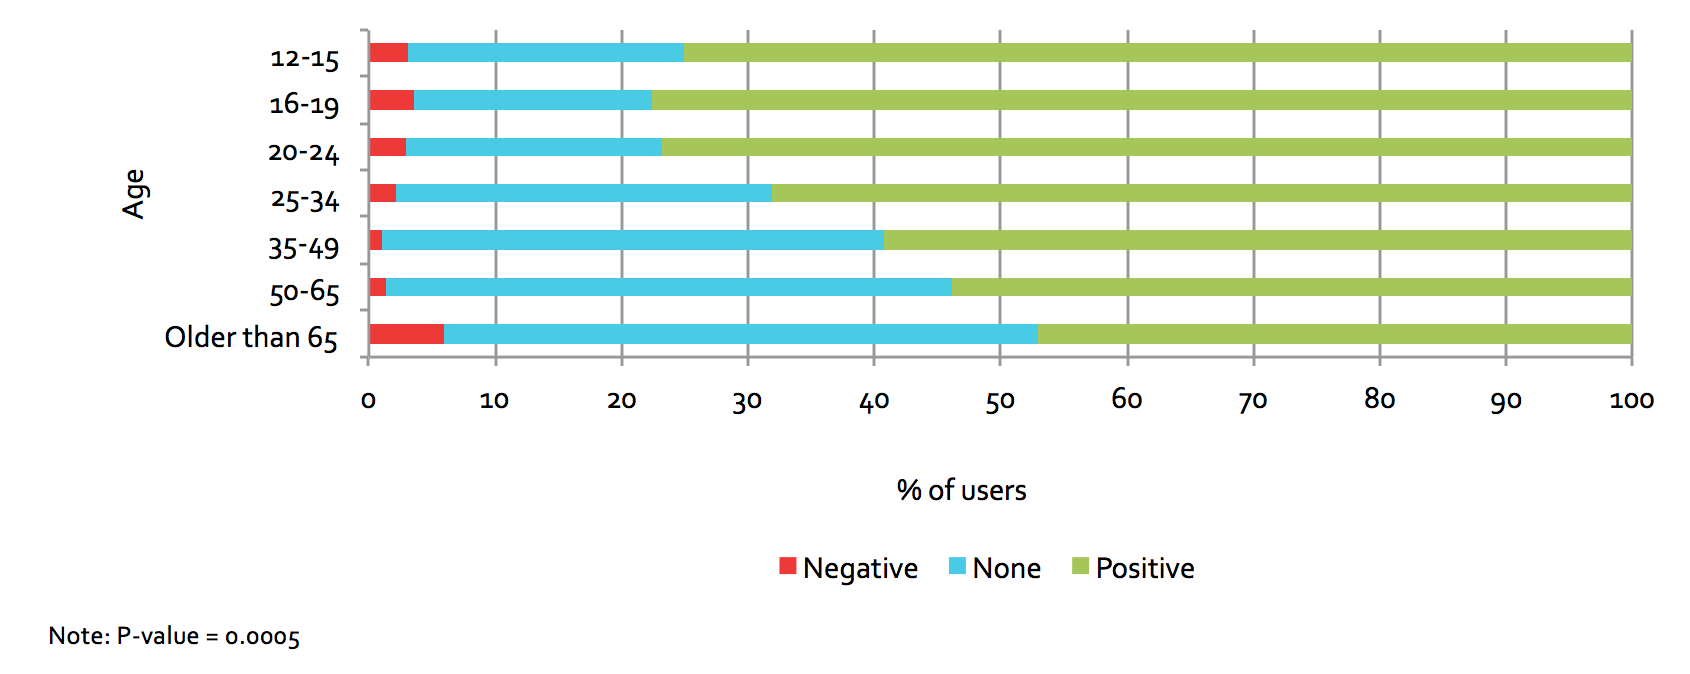 Figure 5.30: Perceived impacts on hobbies & interests, by age